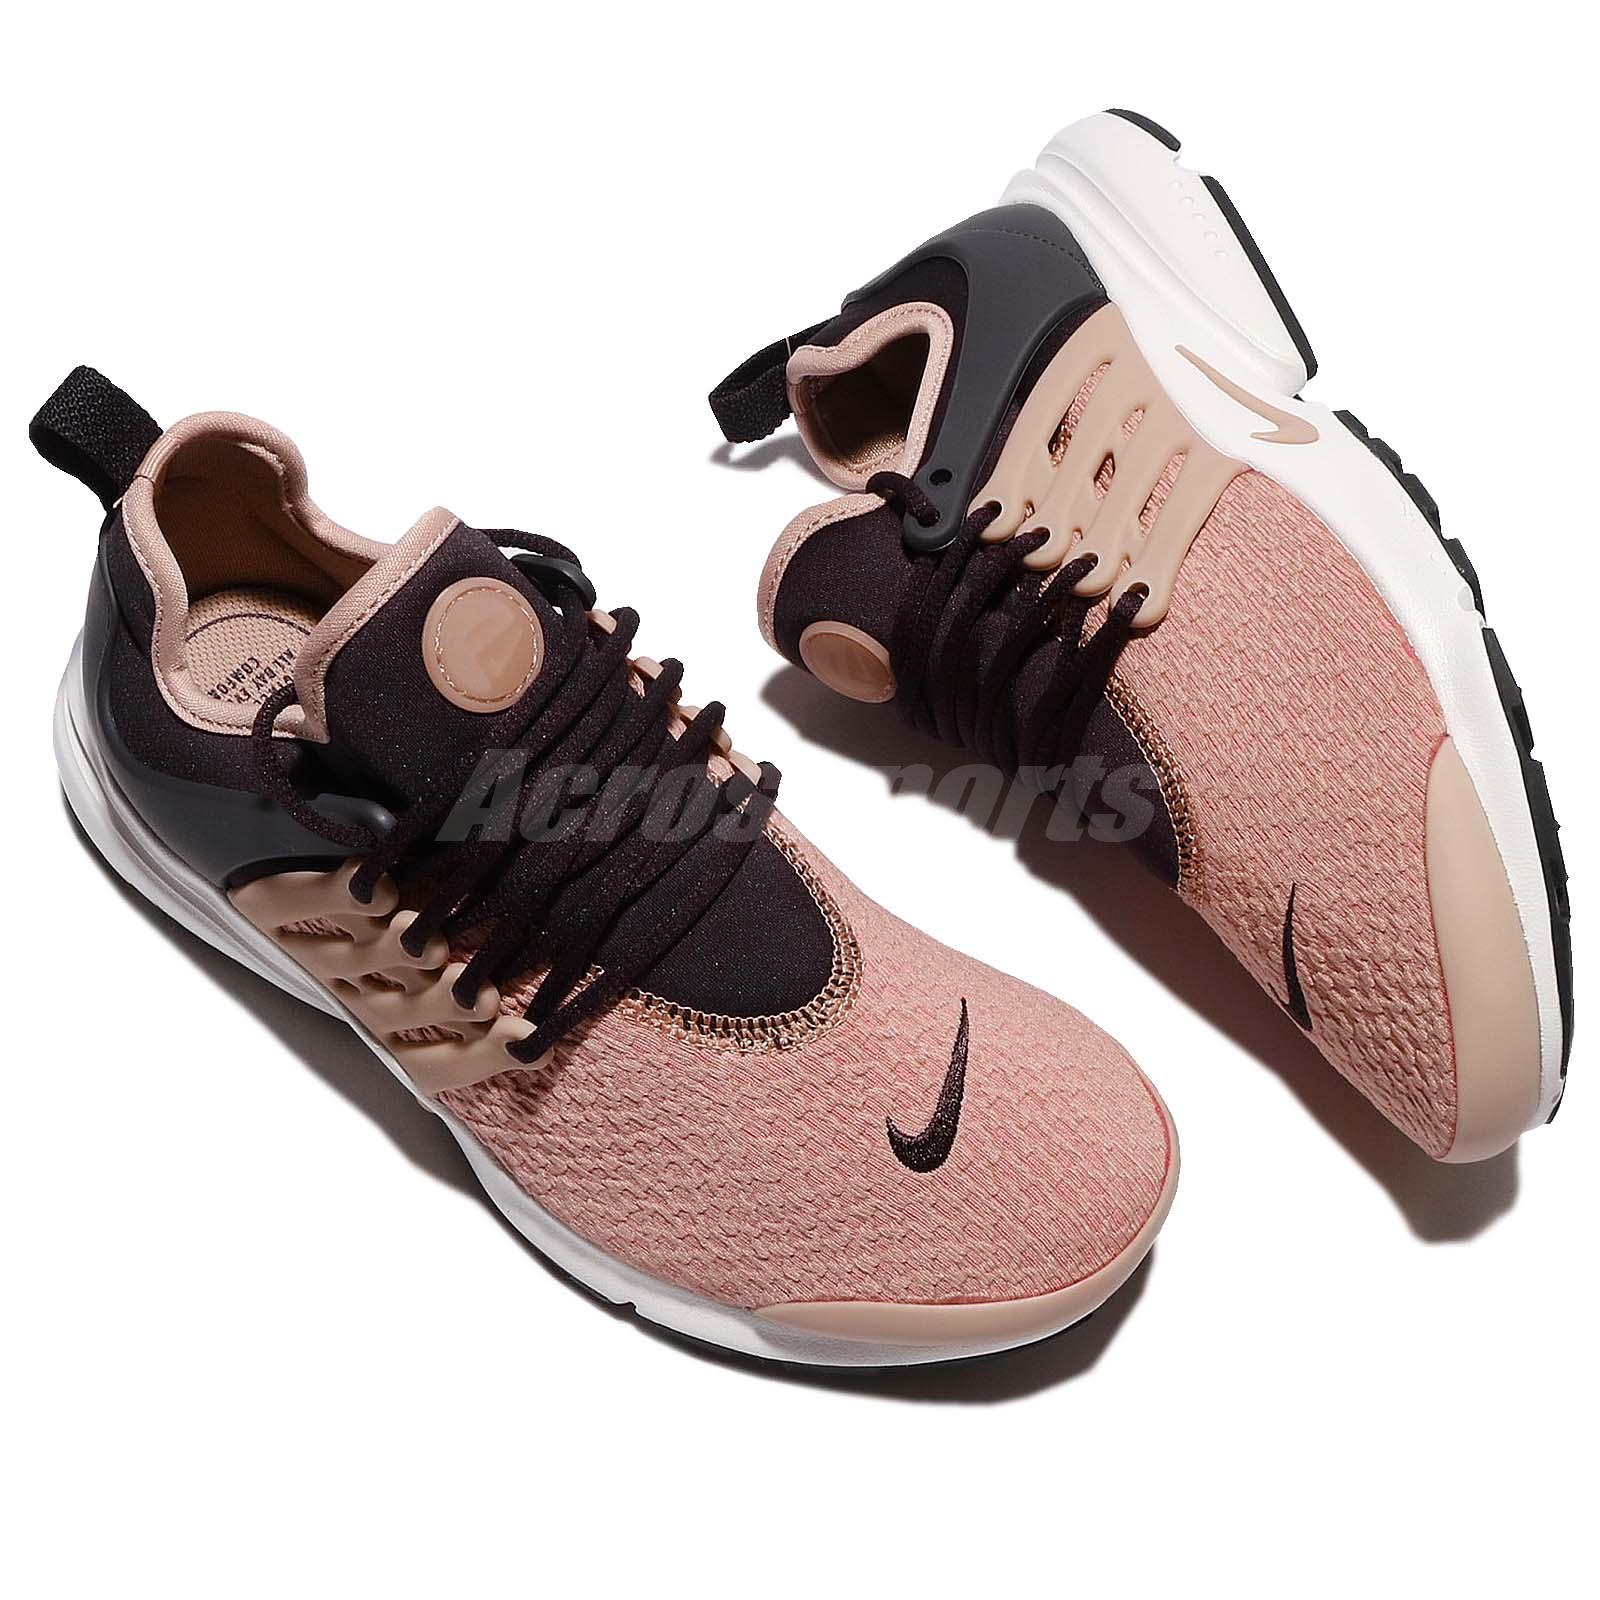 finest selection b0070 5503f Nike Wmns Air Presto Port Wine Particle Pink Women Shoes Sneakers ...